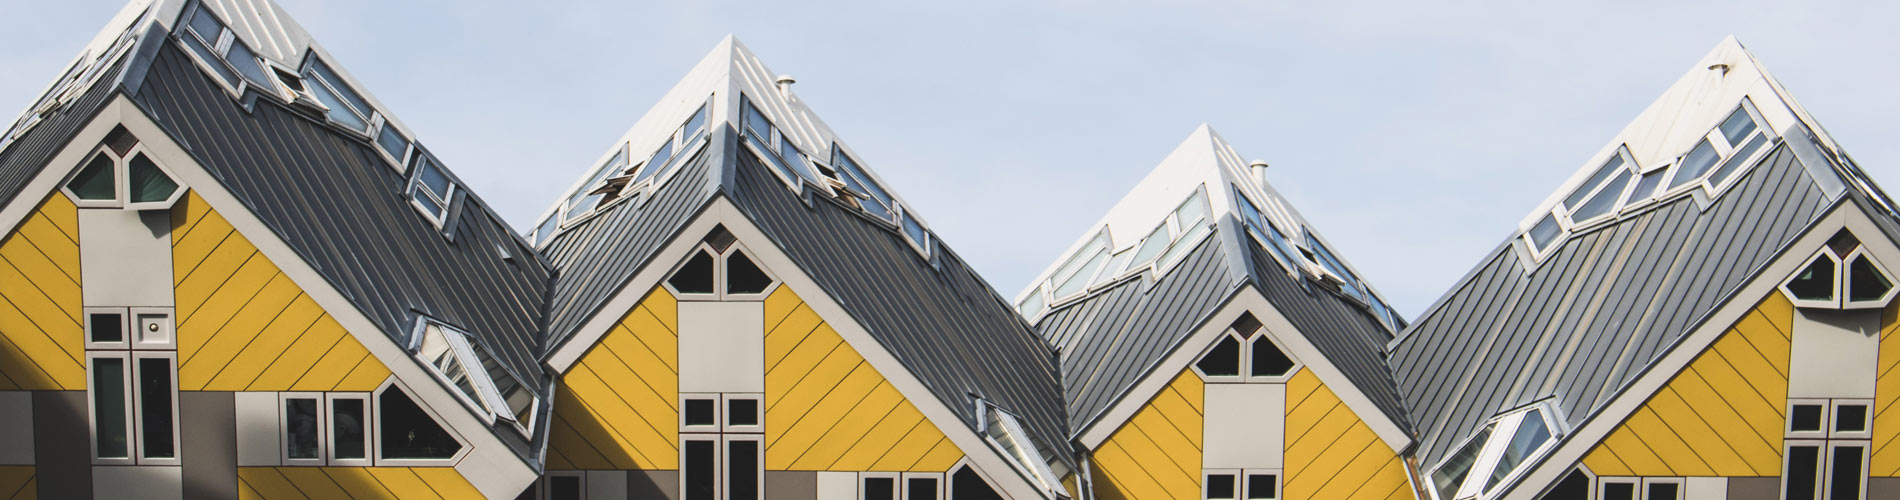 Blog_20for20_Rotterdam-TheNetherlands_1900x500_Q120